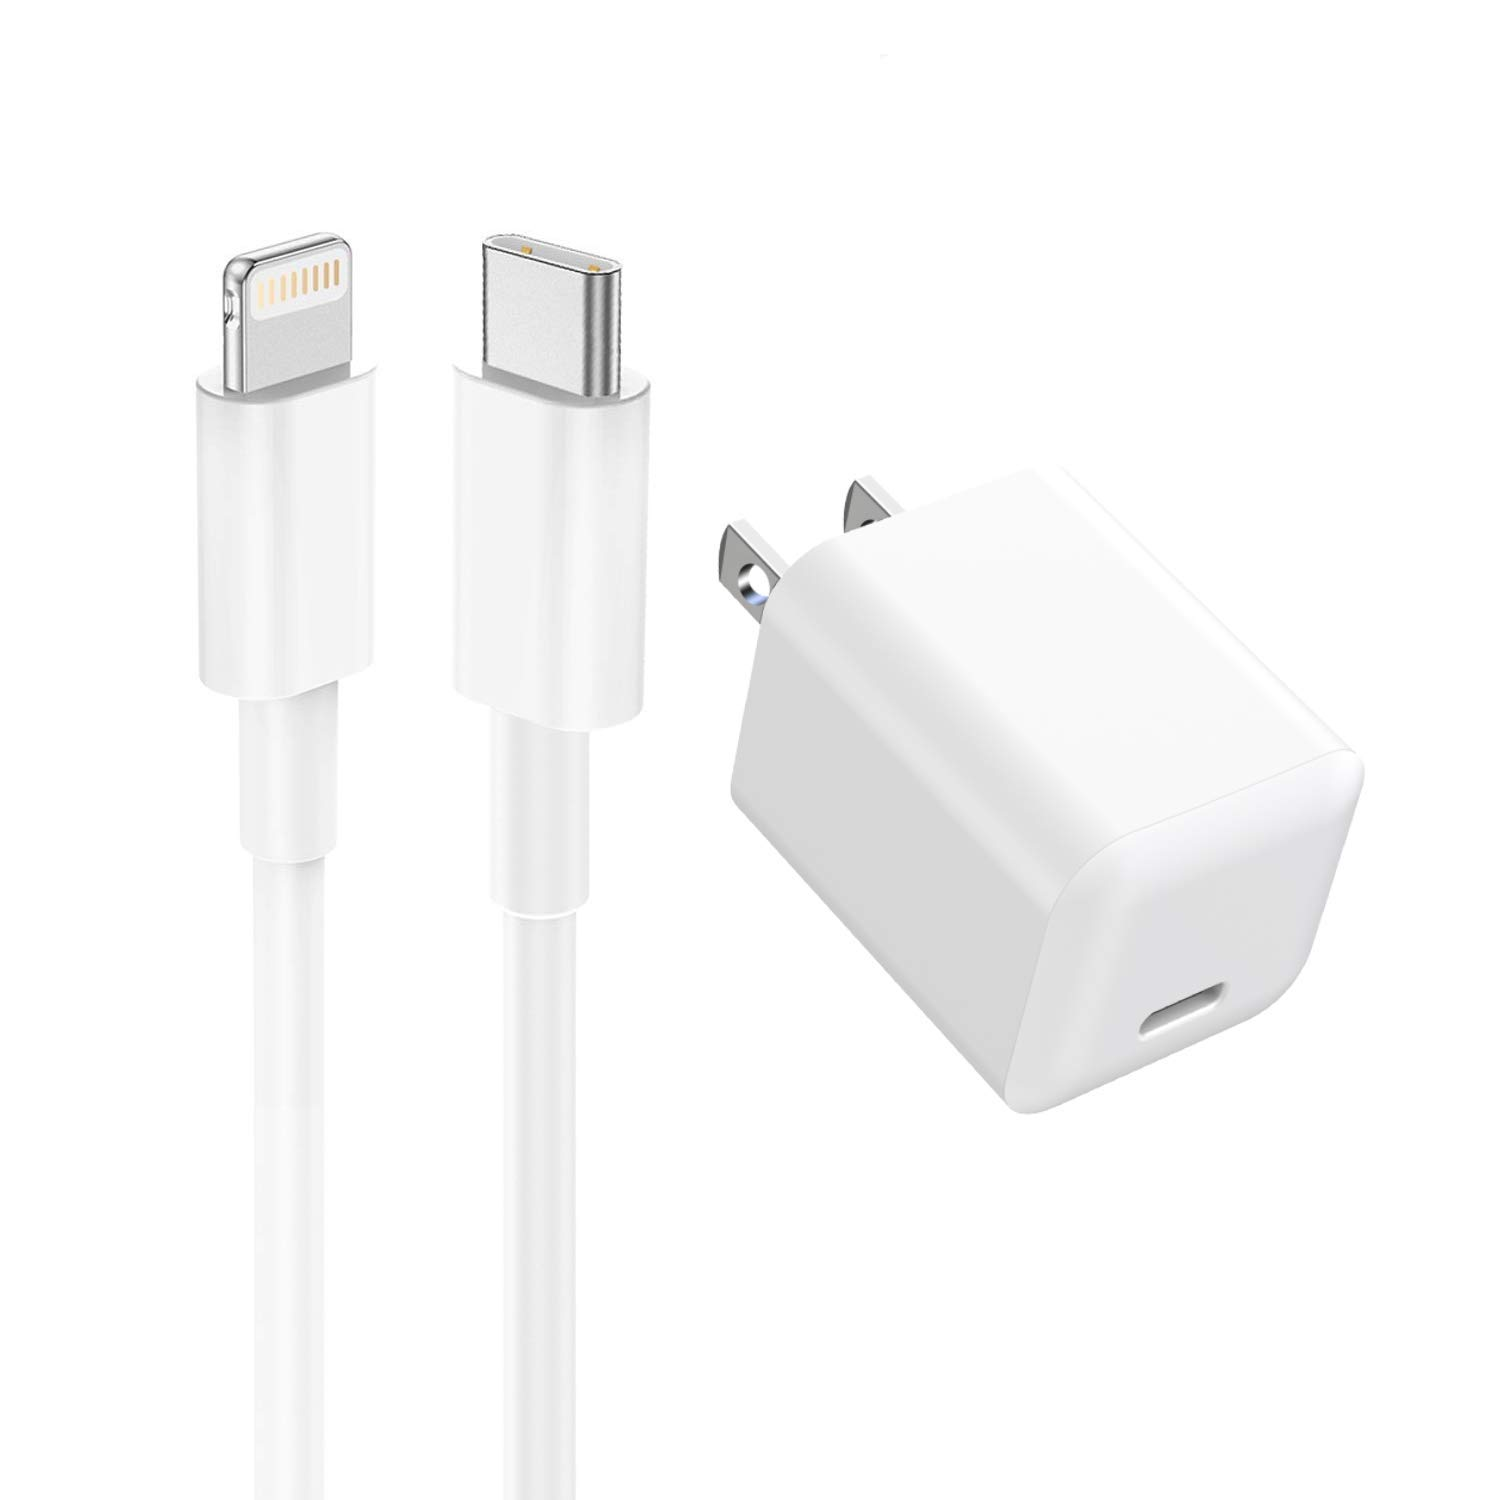 Pantom 20W USB C Type-C Wall Charger and Fast Charging Cable Compatible with iPhone 12/12 Mini/12 Pro/11/11 Pro/11 Pro Max/X/XS/XS Max/XR/8/8 Plus/7/7 Plus/6s/6s Plus/5/SE iPad Air/Mini/iPod